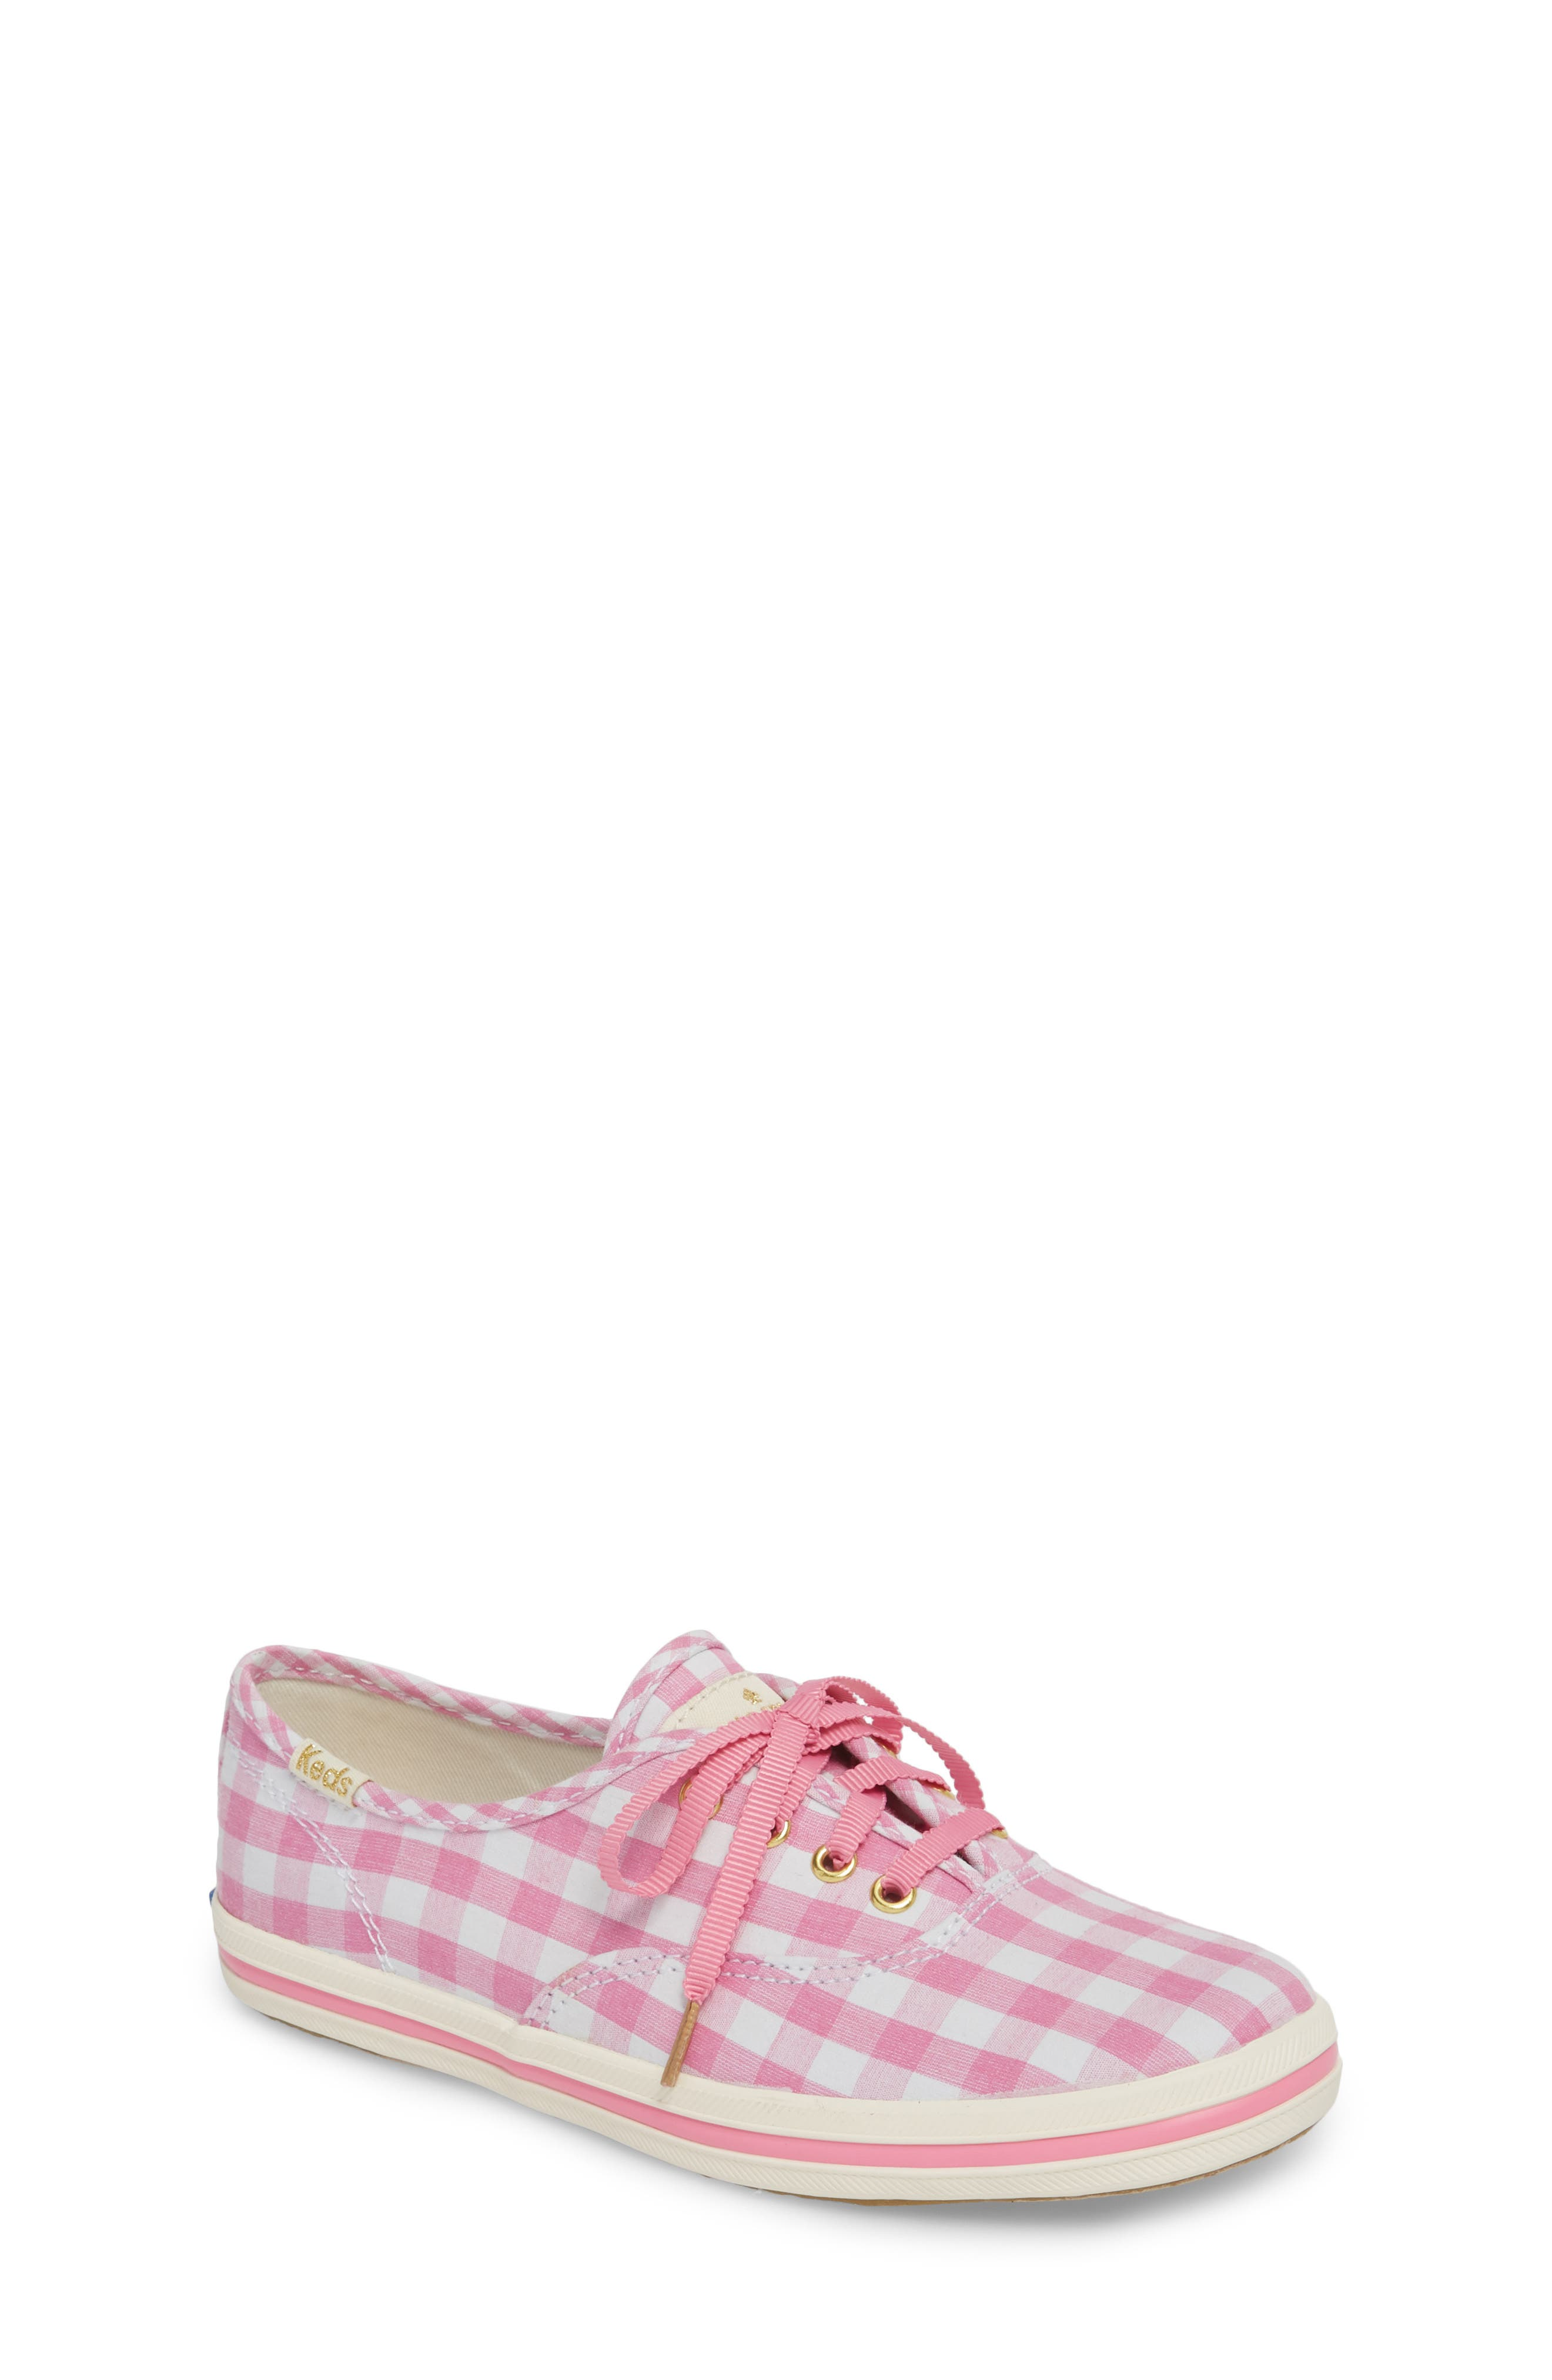 x kate spade new york champion gingham lace-up shoe,                             Main thumbnail 1, color,                             650